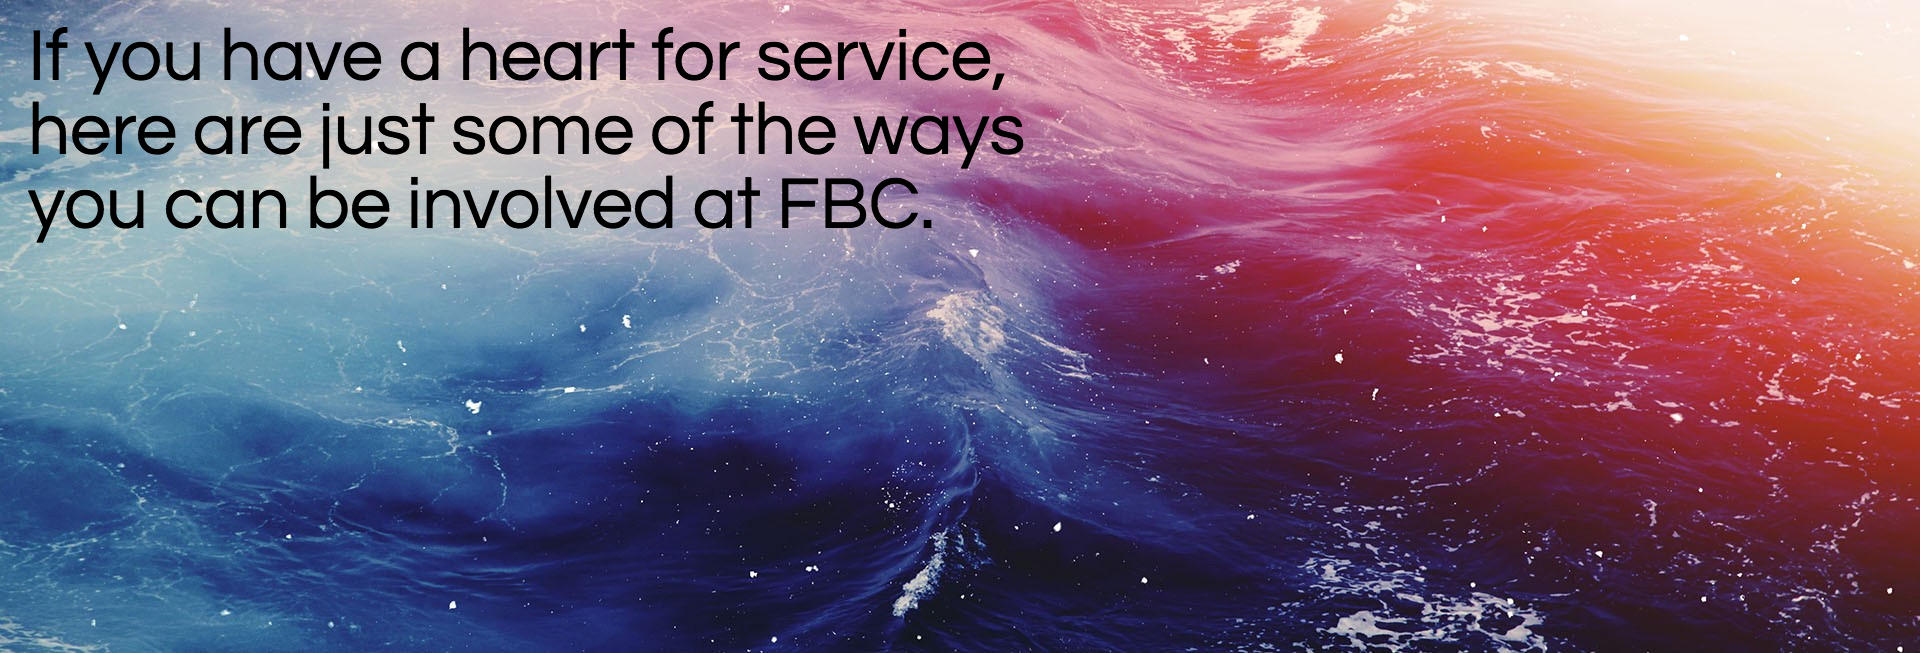 If you have a heart for service, here are just some of the ways you can be involved at FBC.